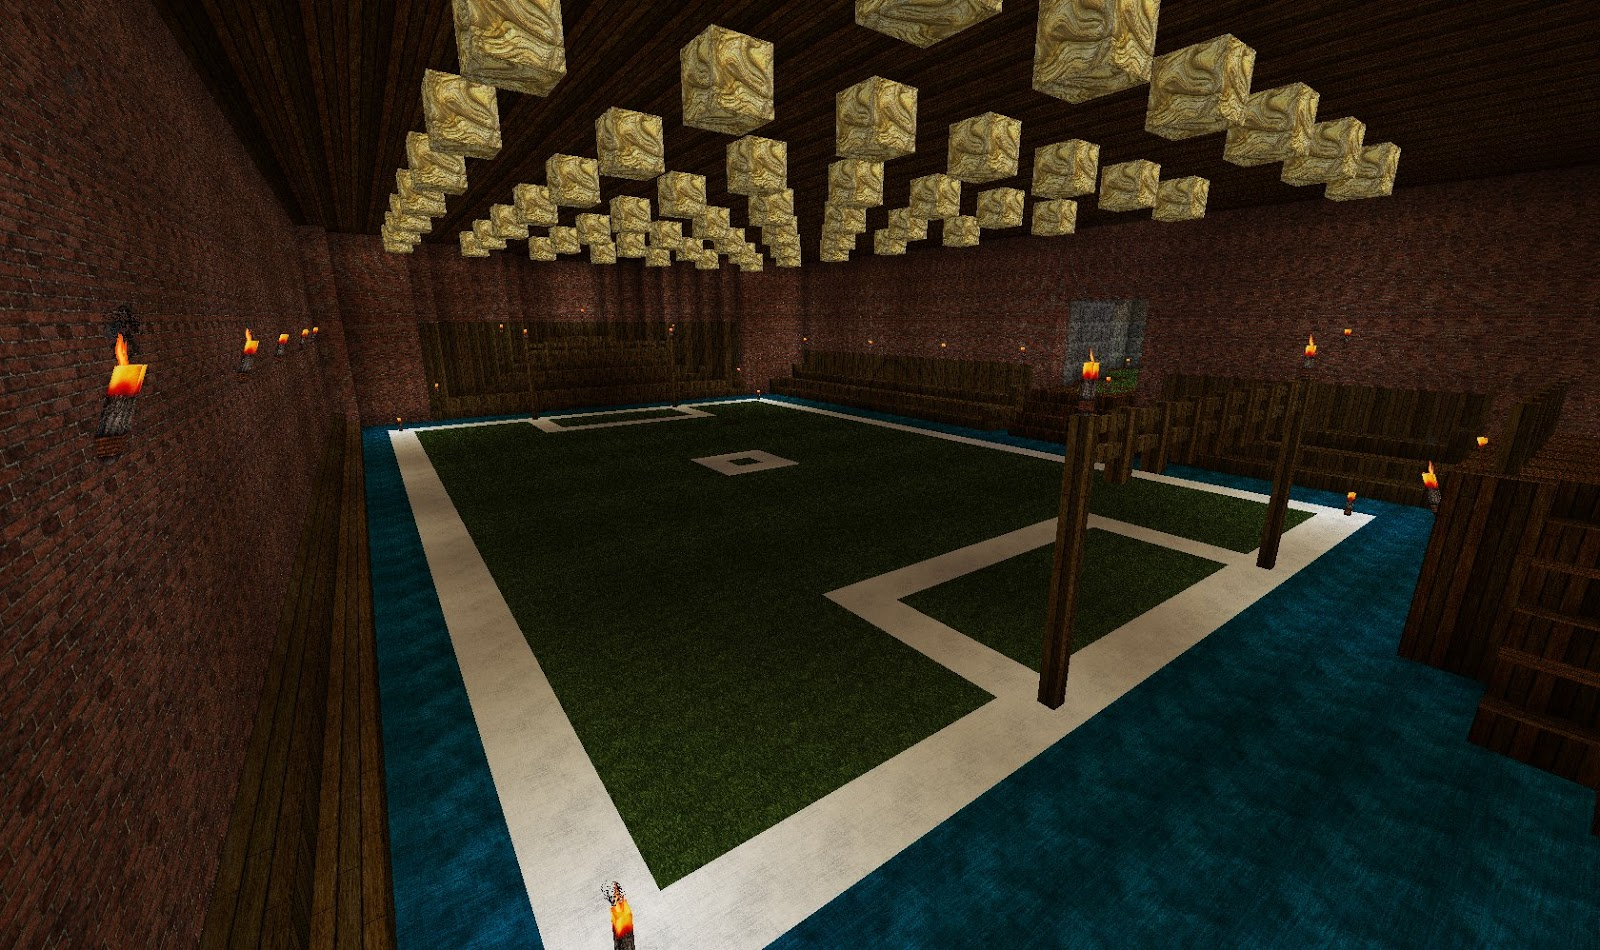 Mansion with indoor soccer field  JD's Gaming Blog: Minecraft Creations: The Brick Mansion Chapter 3 ...